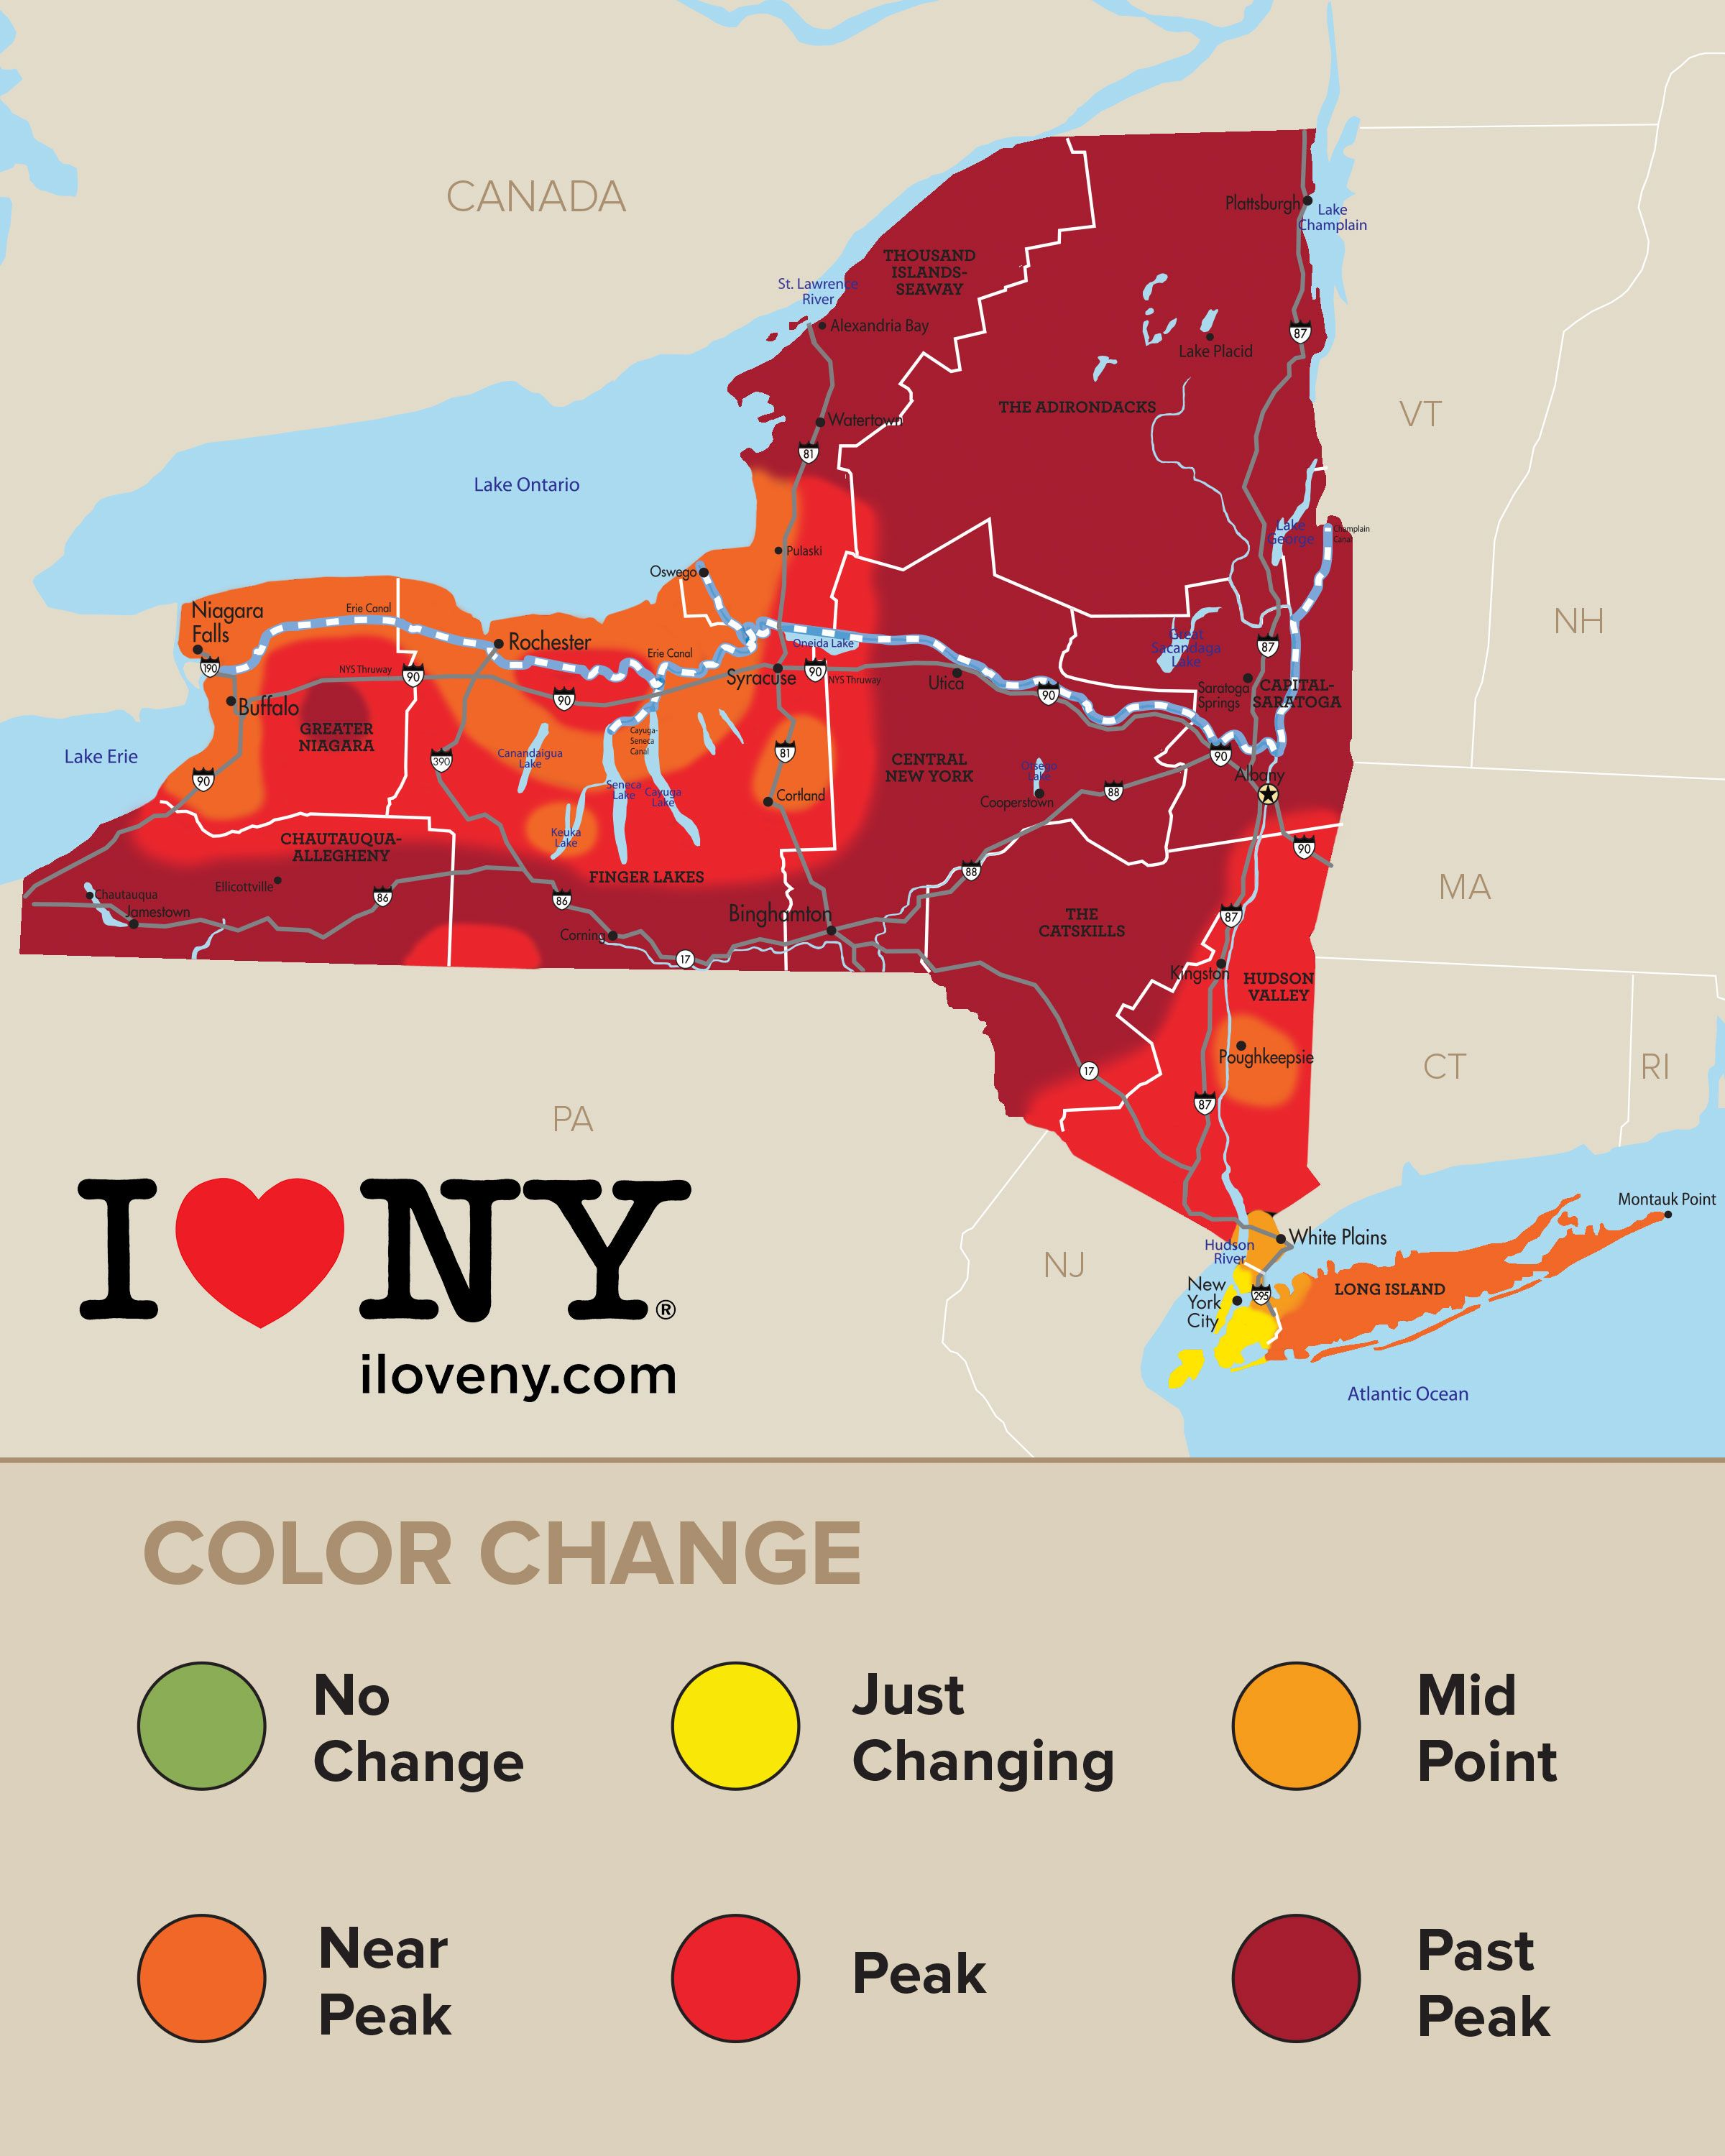 Fall Foliage In New York Autumn Leaves Scenic Drives New England Fall Foliage Map Of New York Fall Foliage Map